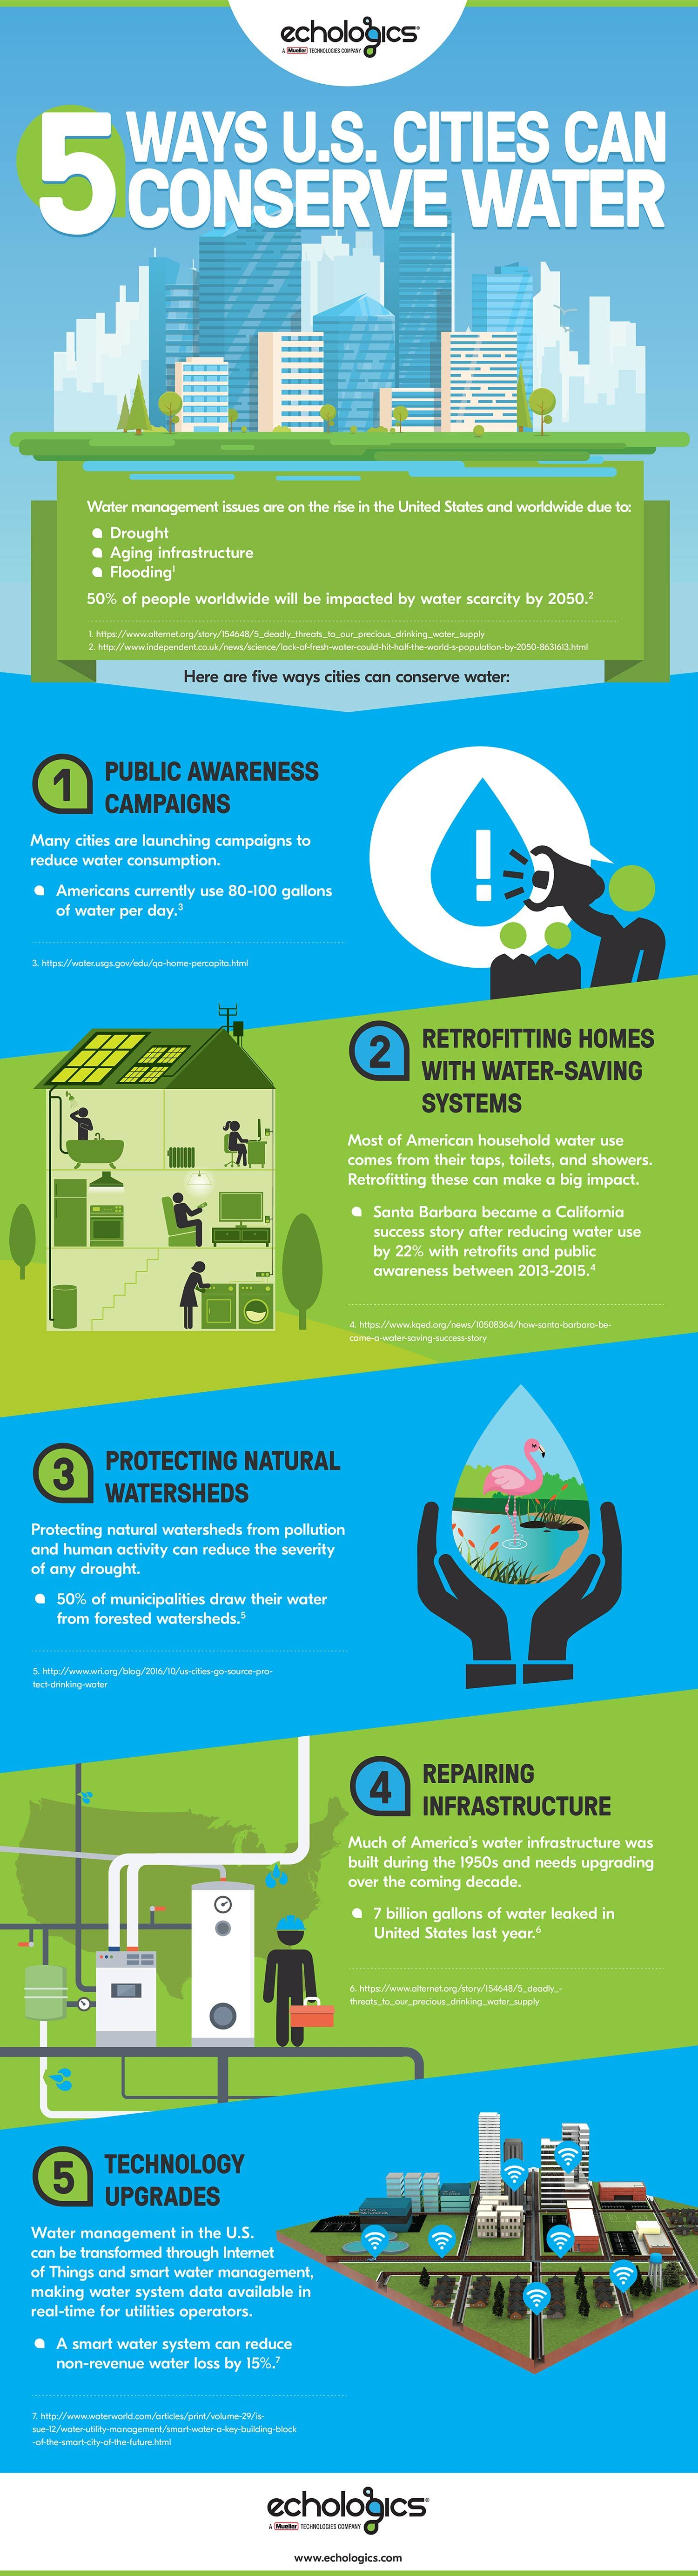 6 Golden Rules To Conserve Water Ways To Conserve Water Save Water Essay Save Water